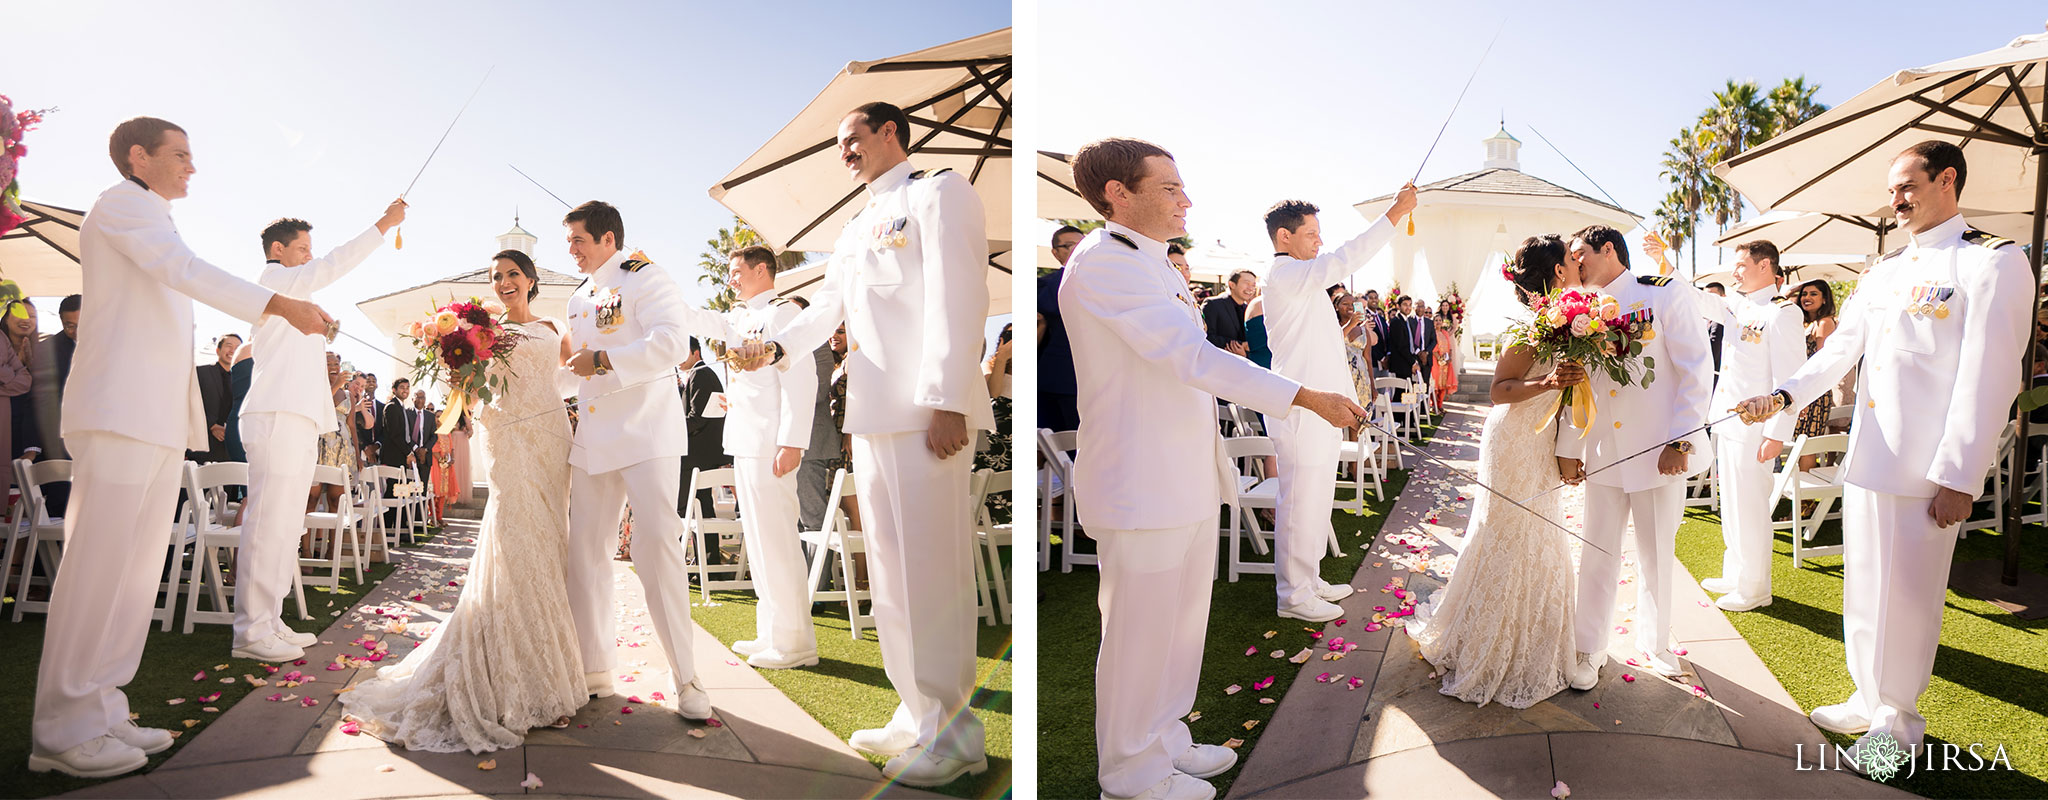 19 newport beach marriott hotel wedding ceremony photography